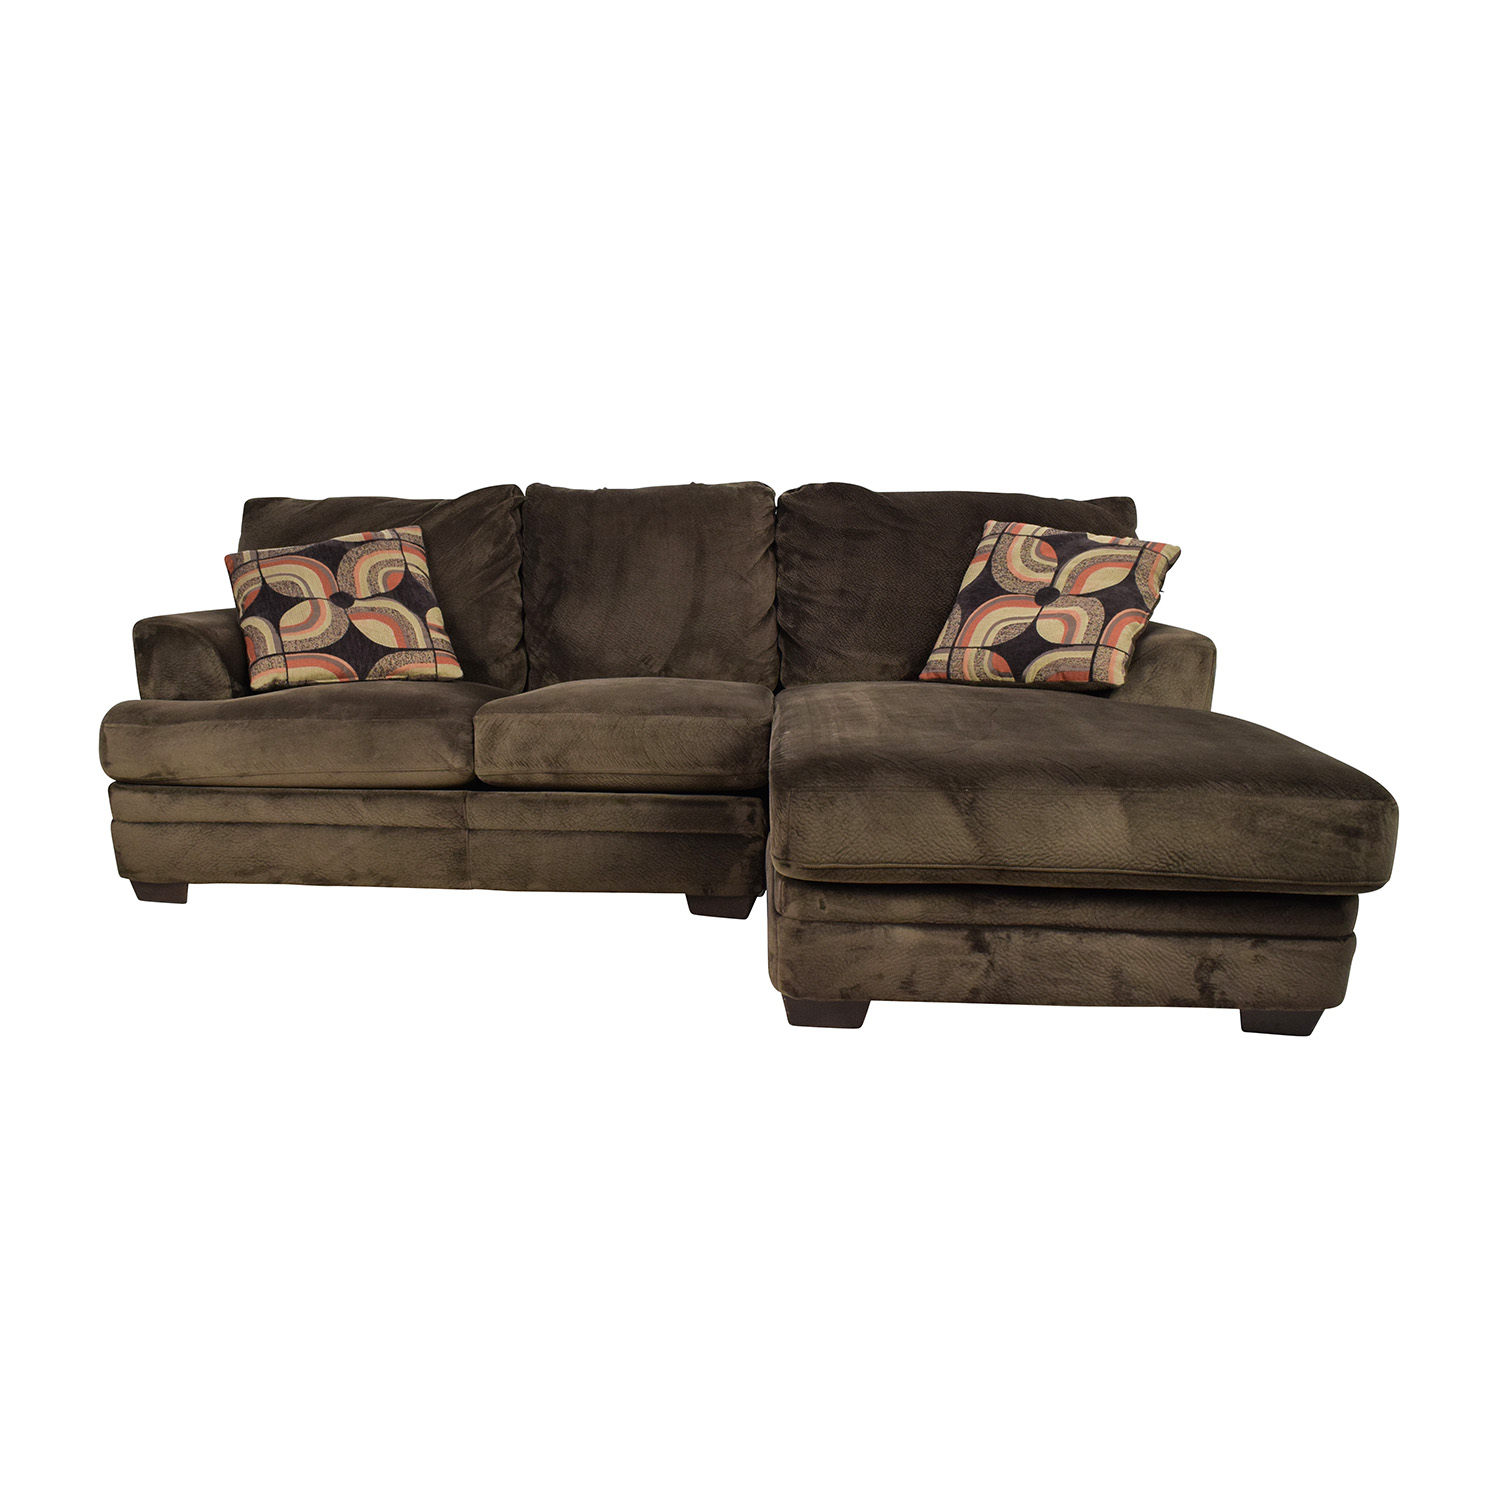 2nd hand sectional sofa small spaces second beds design interesting